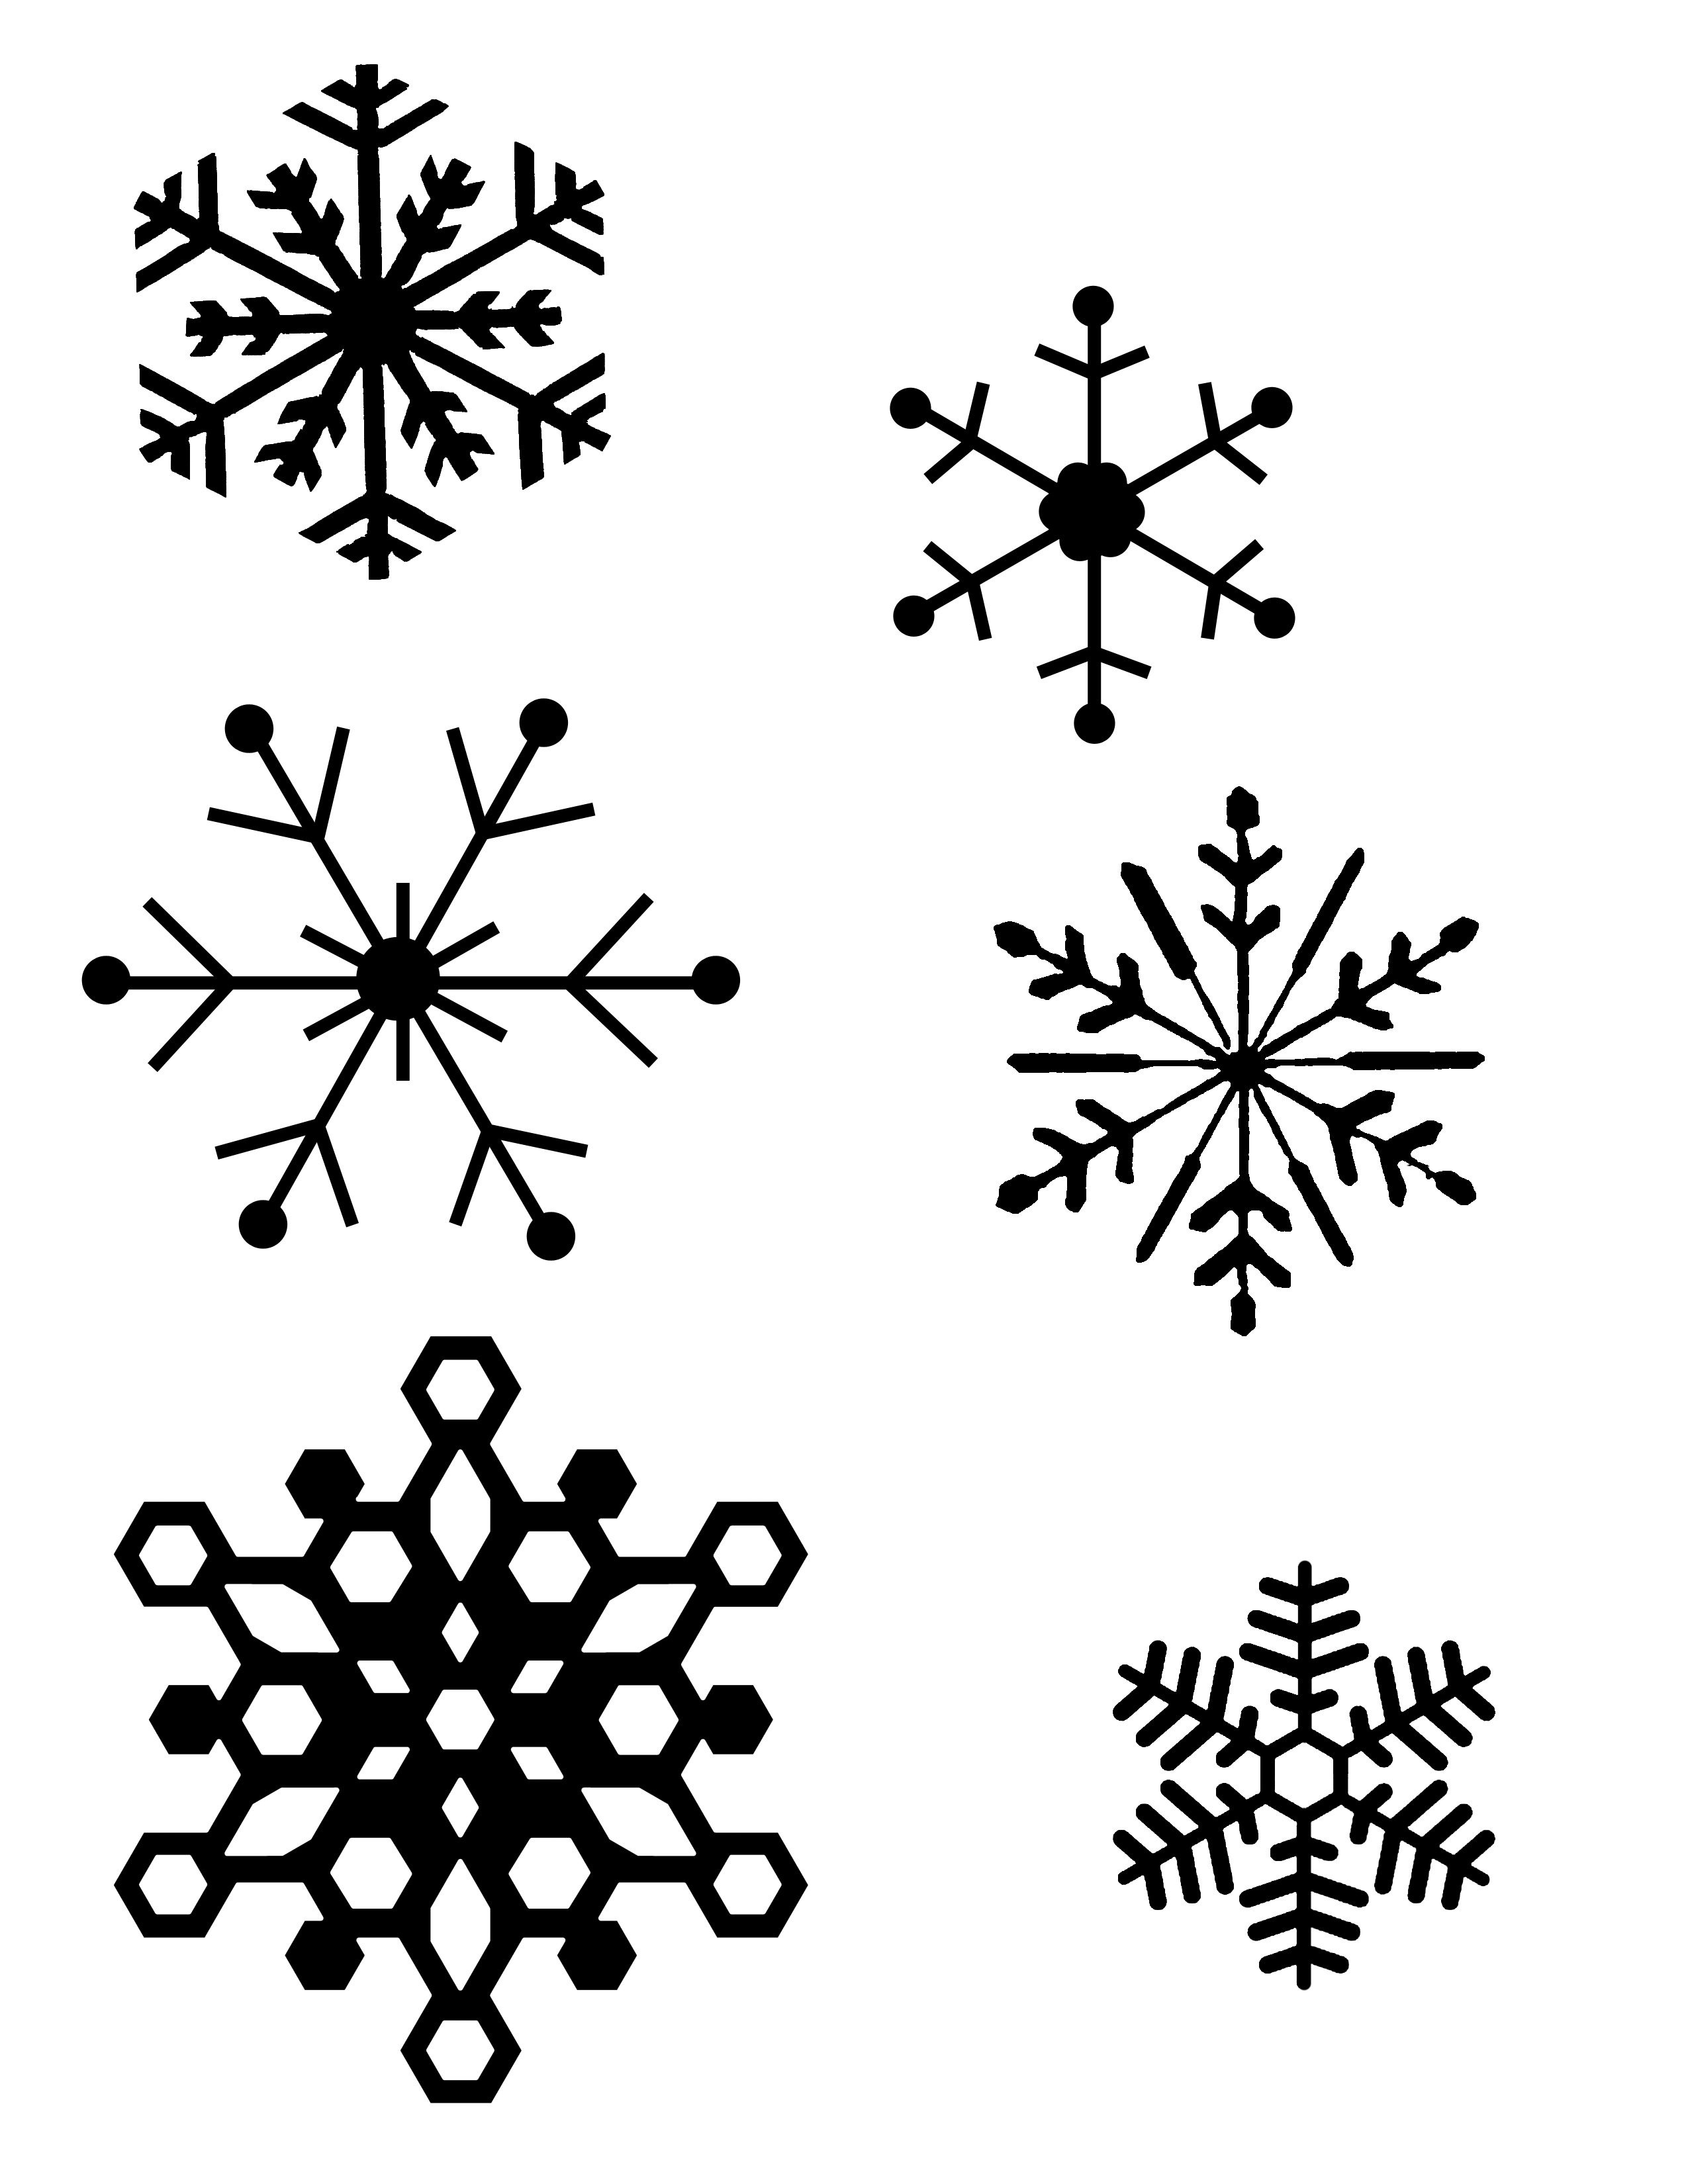 Snowflake Patterns (For Hot Glue Gun Snowflakes) I Think I Will Be - Free Printable Snowflake Patterns